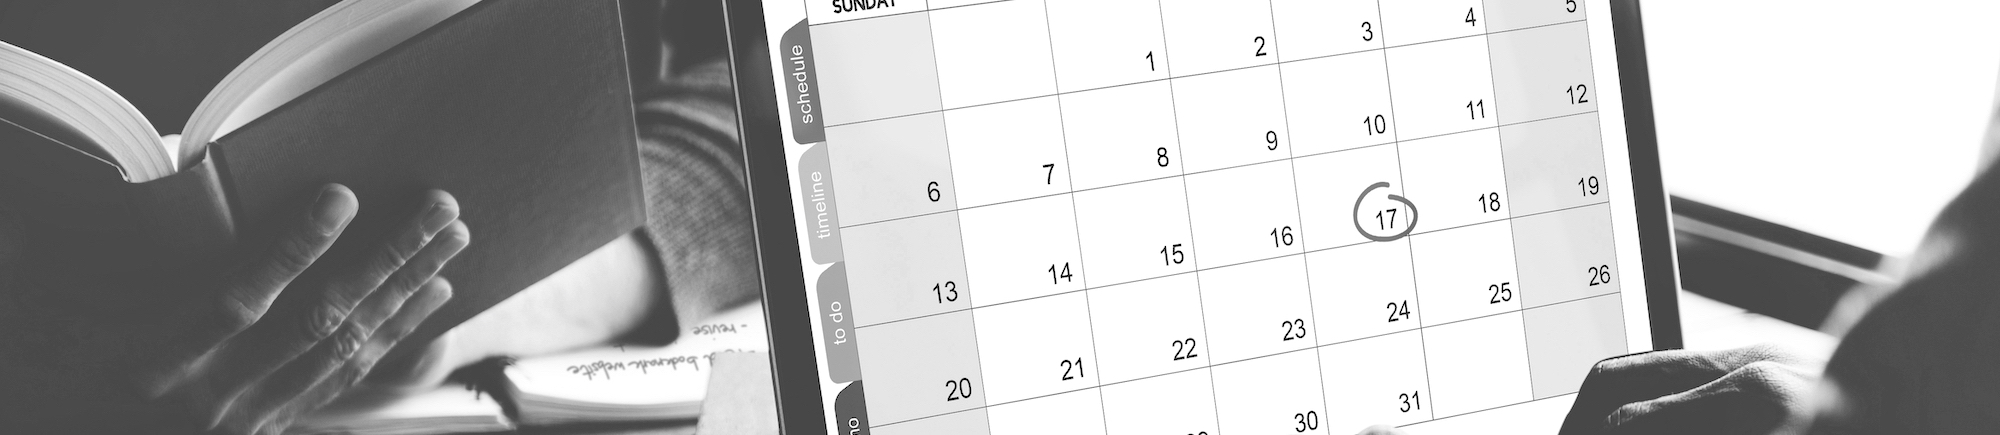 Closeup of computer laptop screen showing calenda with date and month